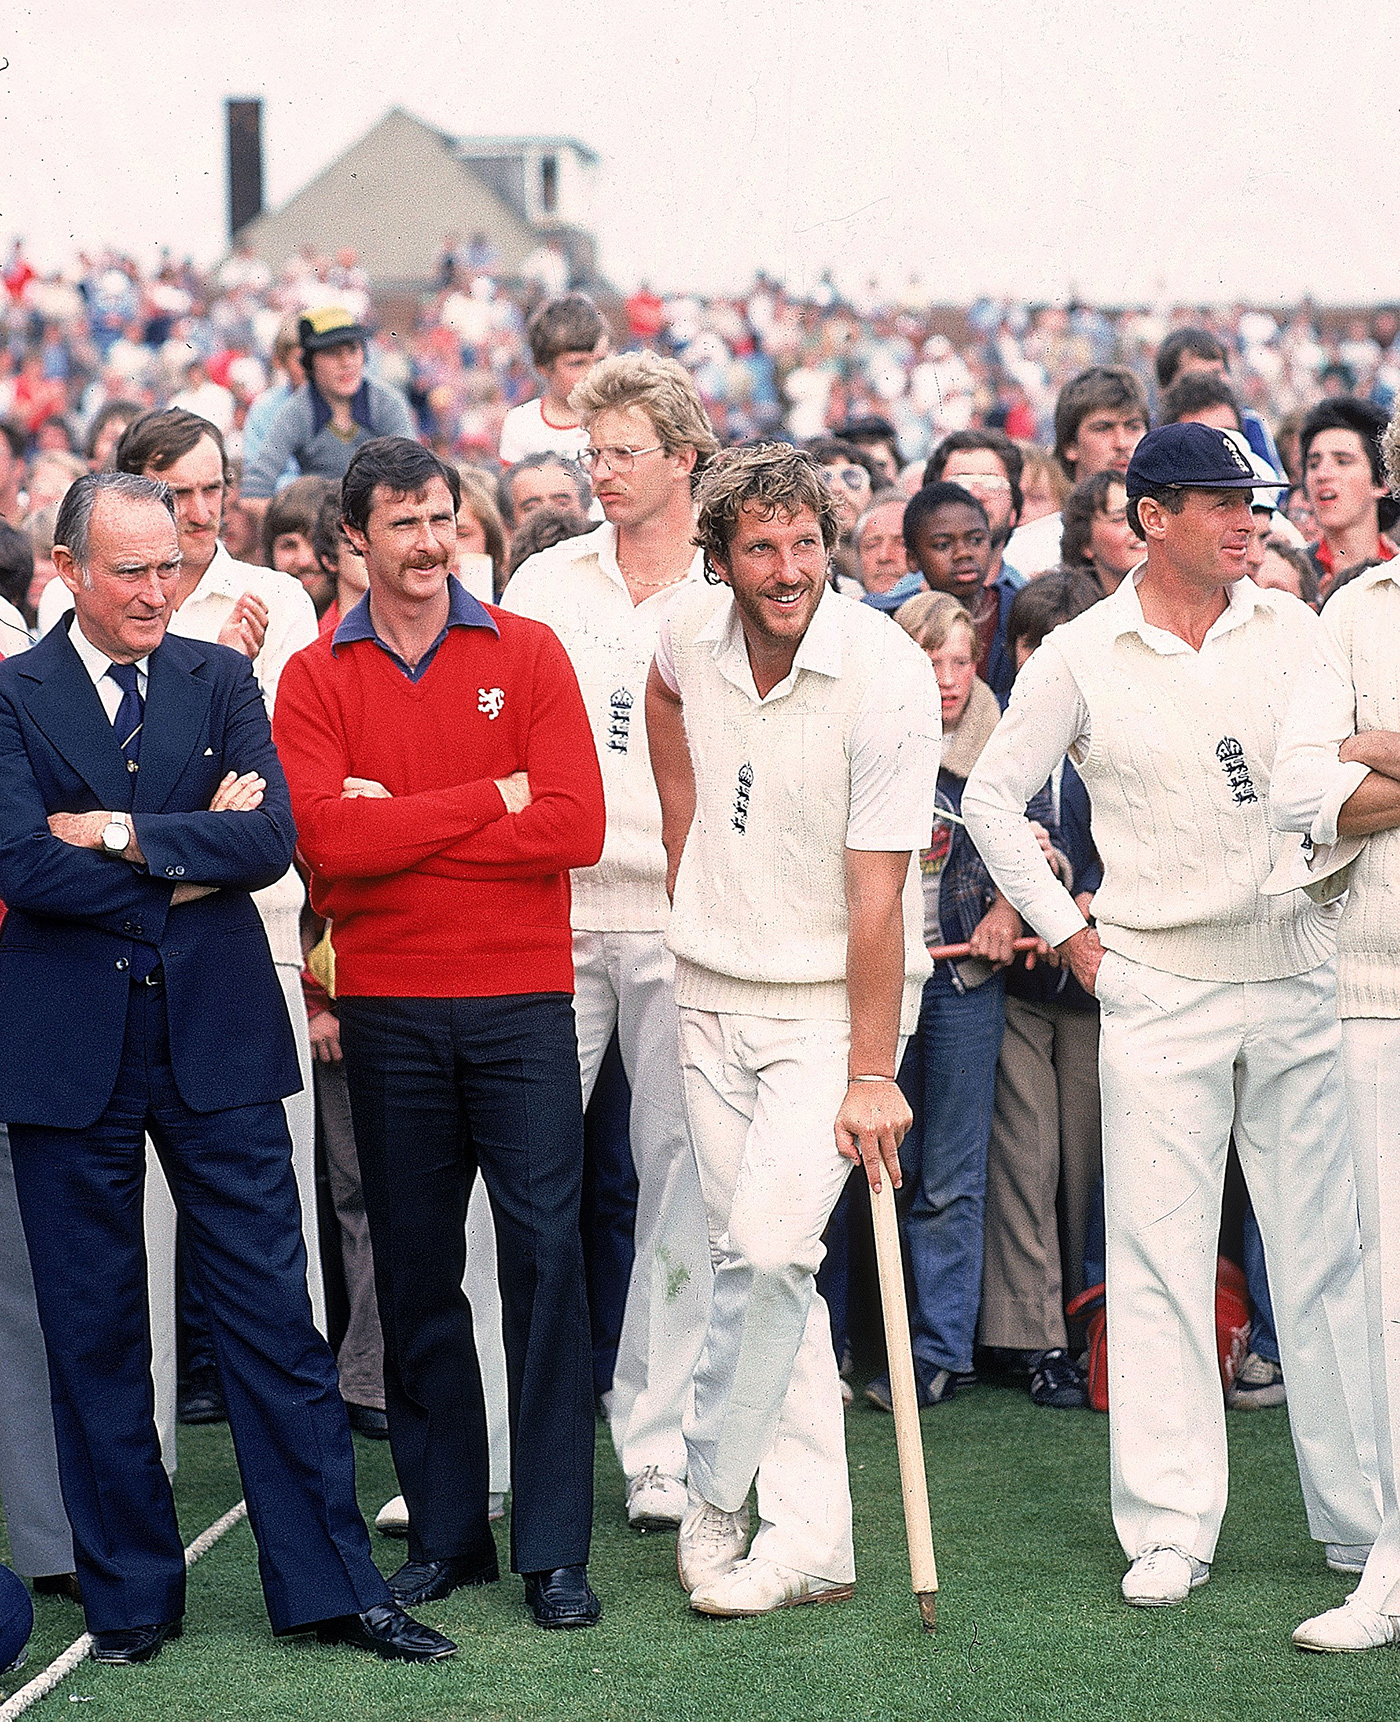 Beefy with Graham Yallop (red shirt) and Geoff Boycott after the match